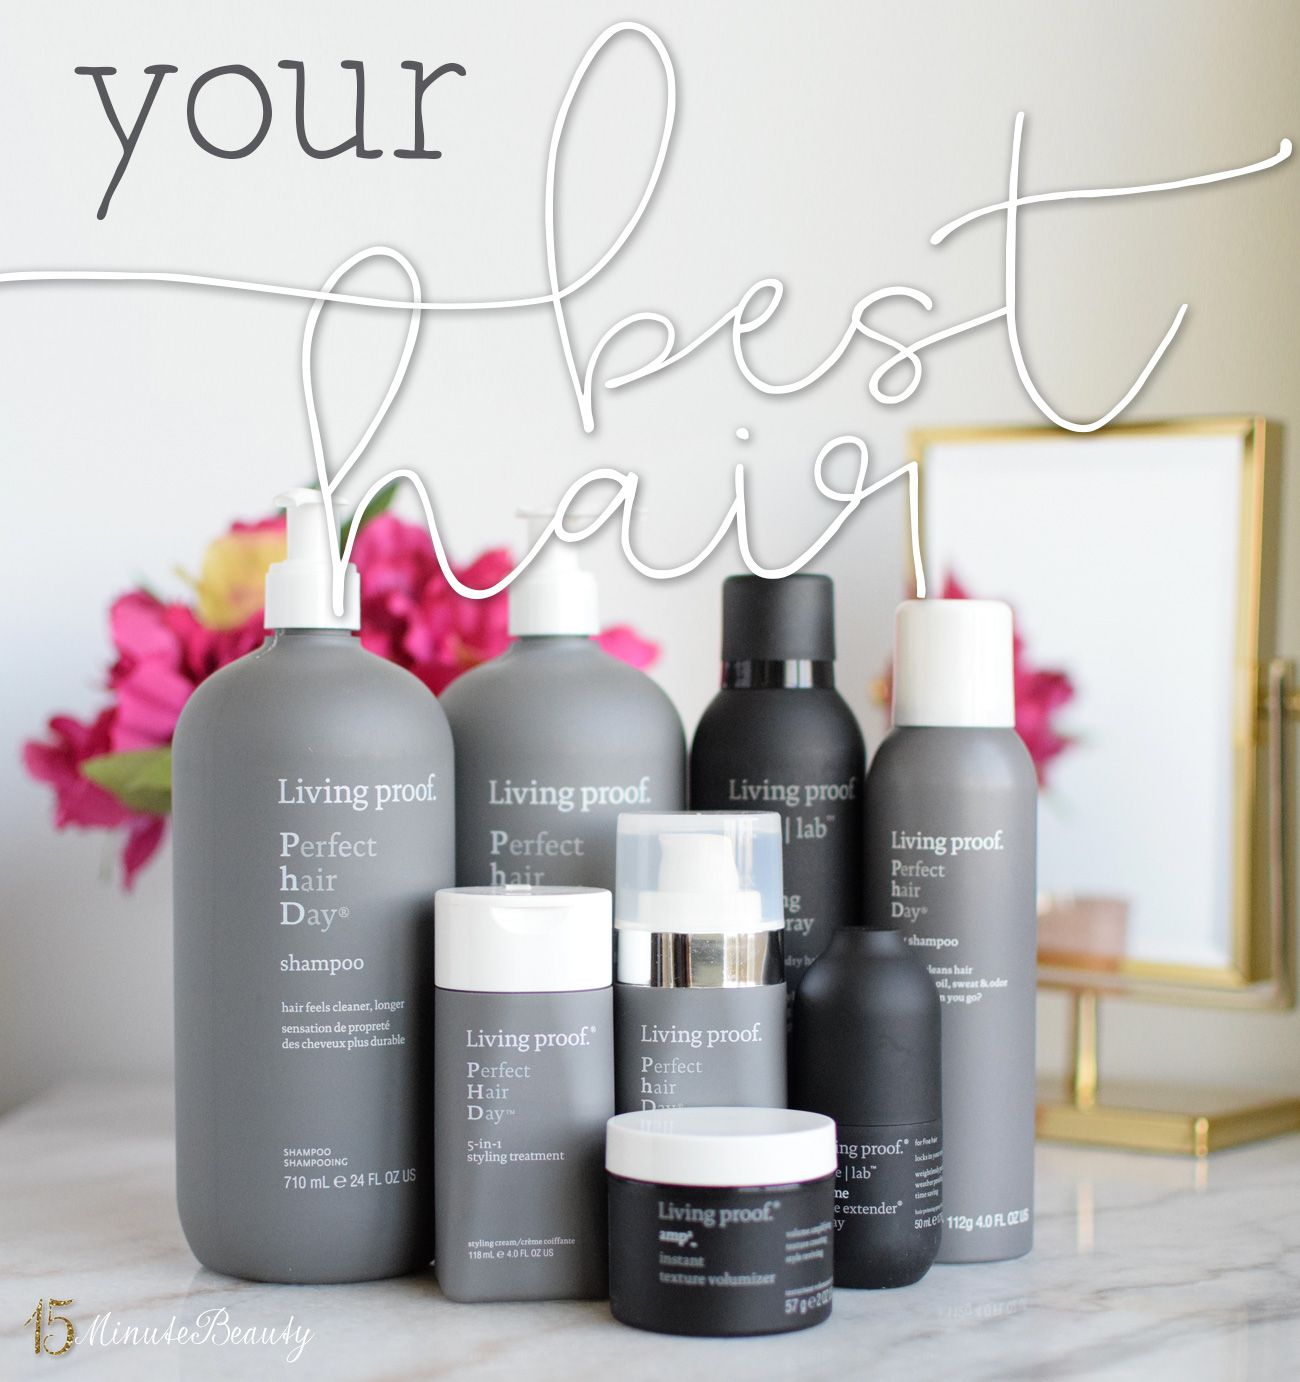 It's Possible Get YOUR Best Hair with Living Proof